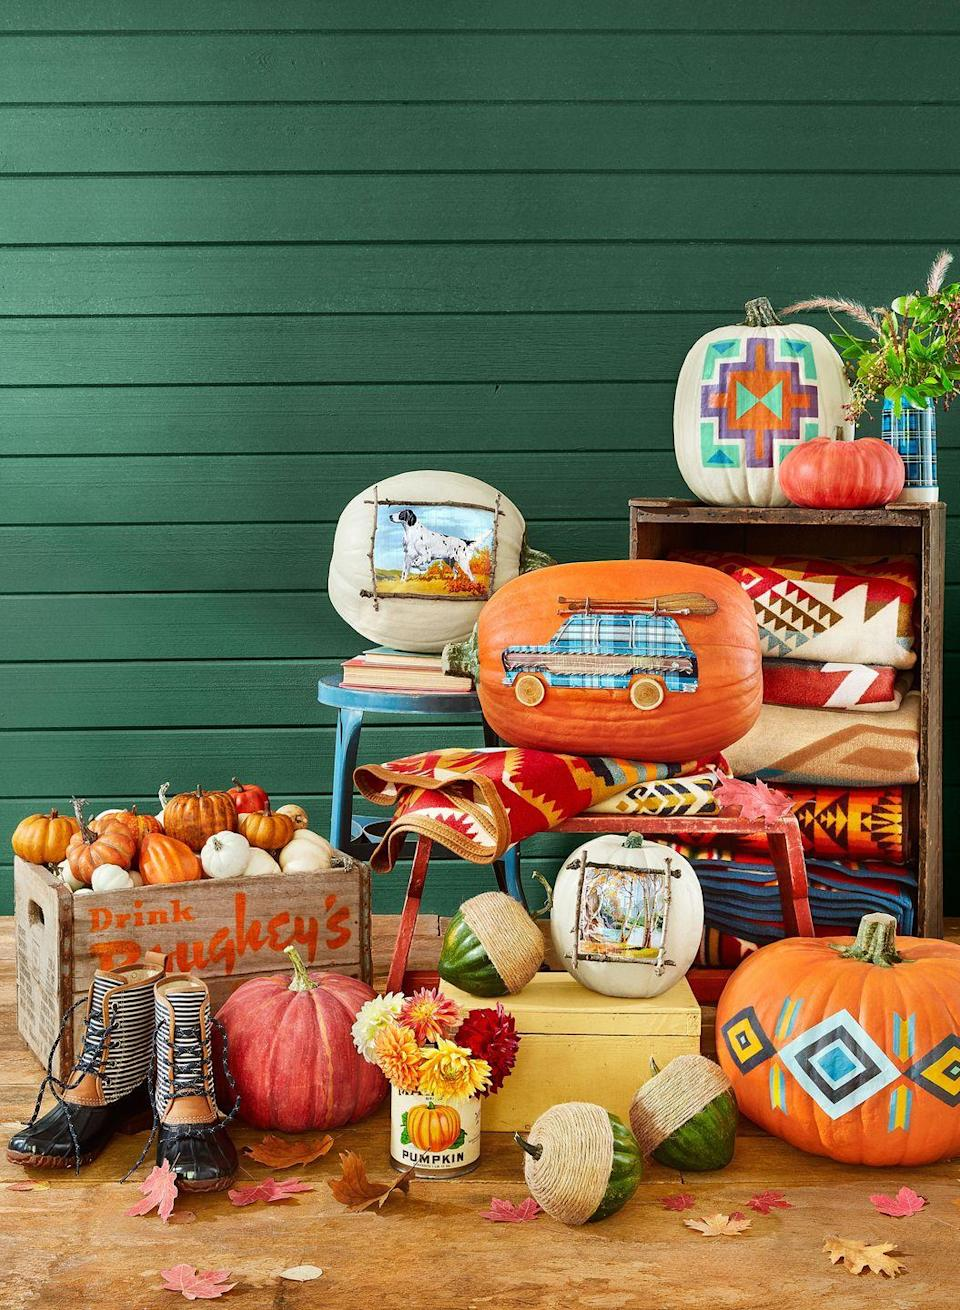 <p>Just because it's Halloween doesn't mean you have to treat your yard like it's the set of a horror movie! Stay original <em>and</em> keep things beautiful with Southwestern-inspired decorating ideas, which will keep your home looking pretty well into the fall season. Try filling a distressed crate with pumpkins (retro-inspired coolers work too!). You can also add a bouquet of fresh flowers to a plaid vintage Thermos, and paint pumpkins with Southwestern-inspired designs. </p>